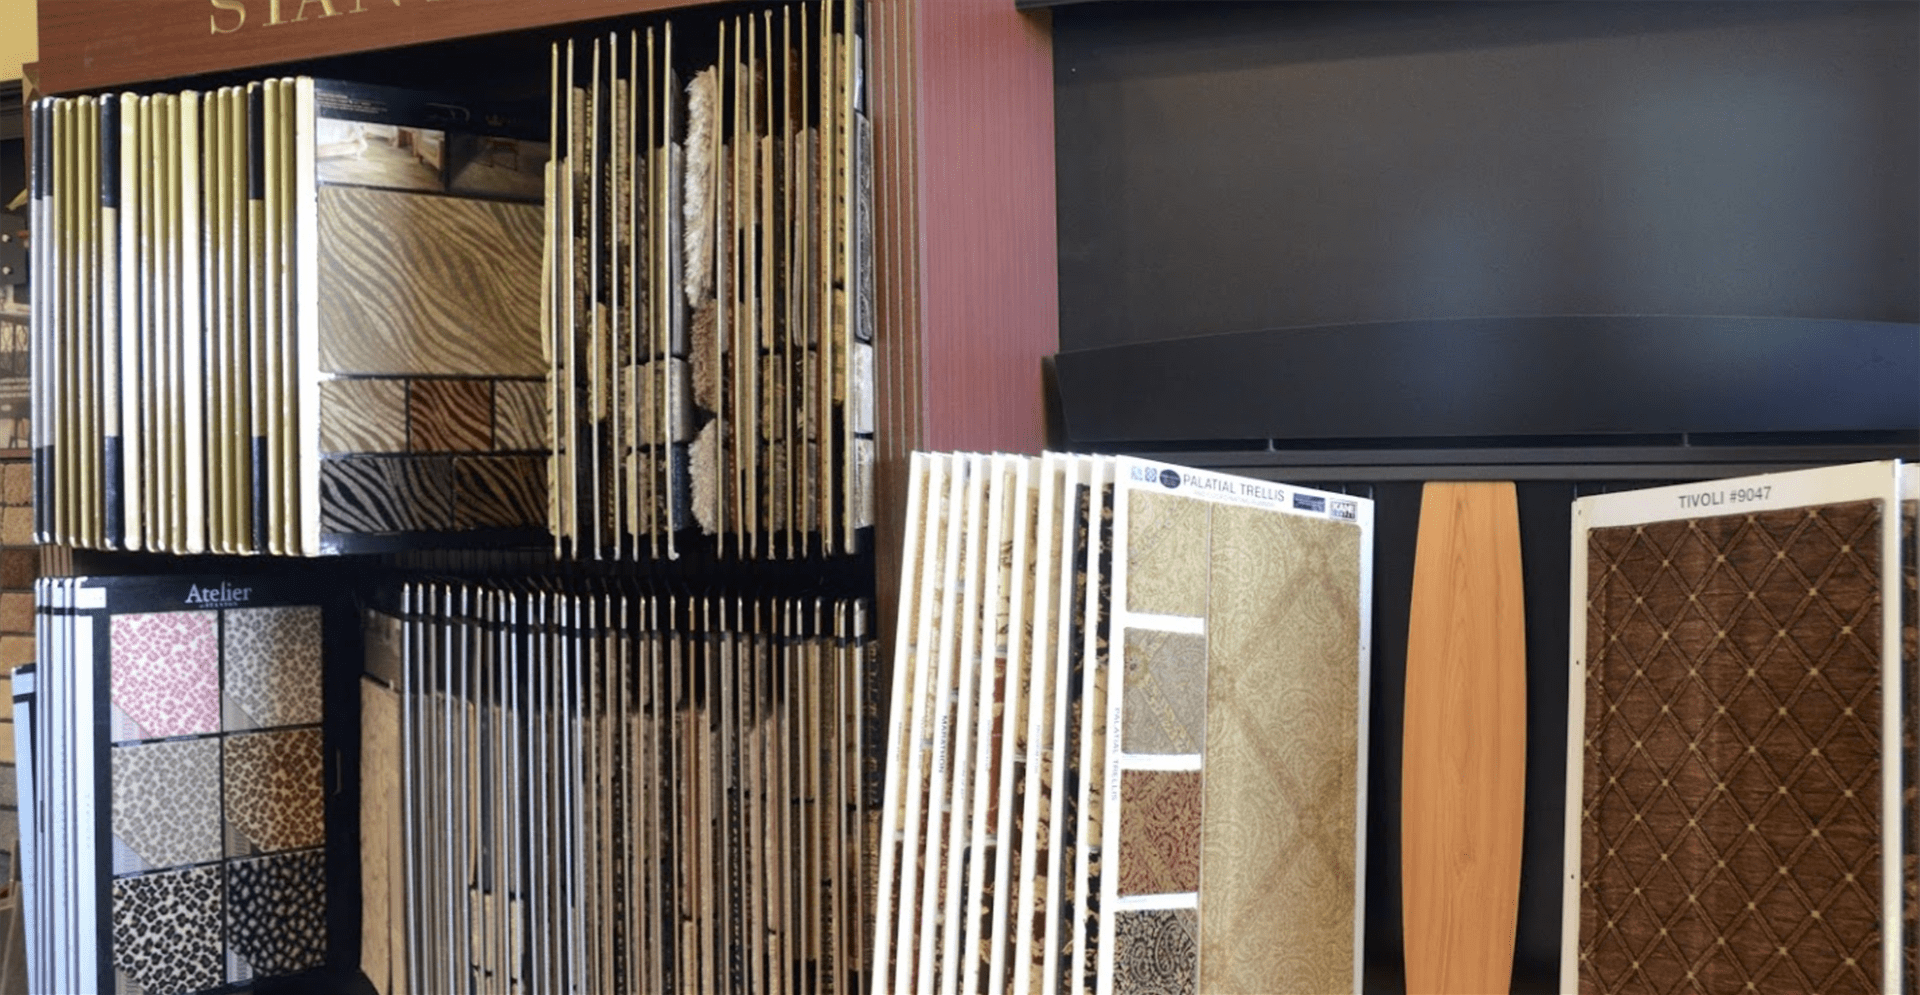 Superb Carpets, Inc. showroom in West Chicago, IL